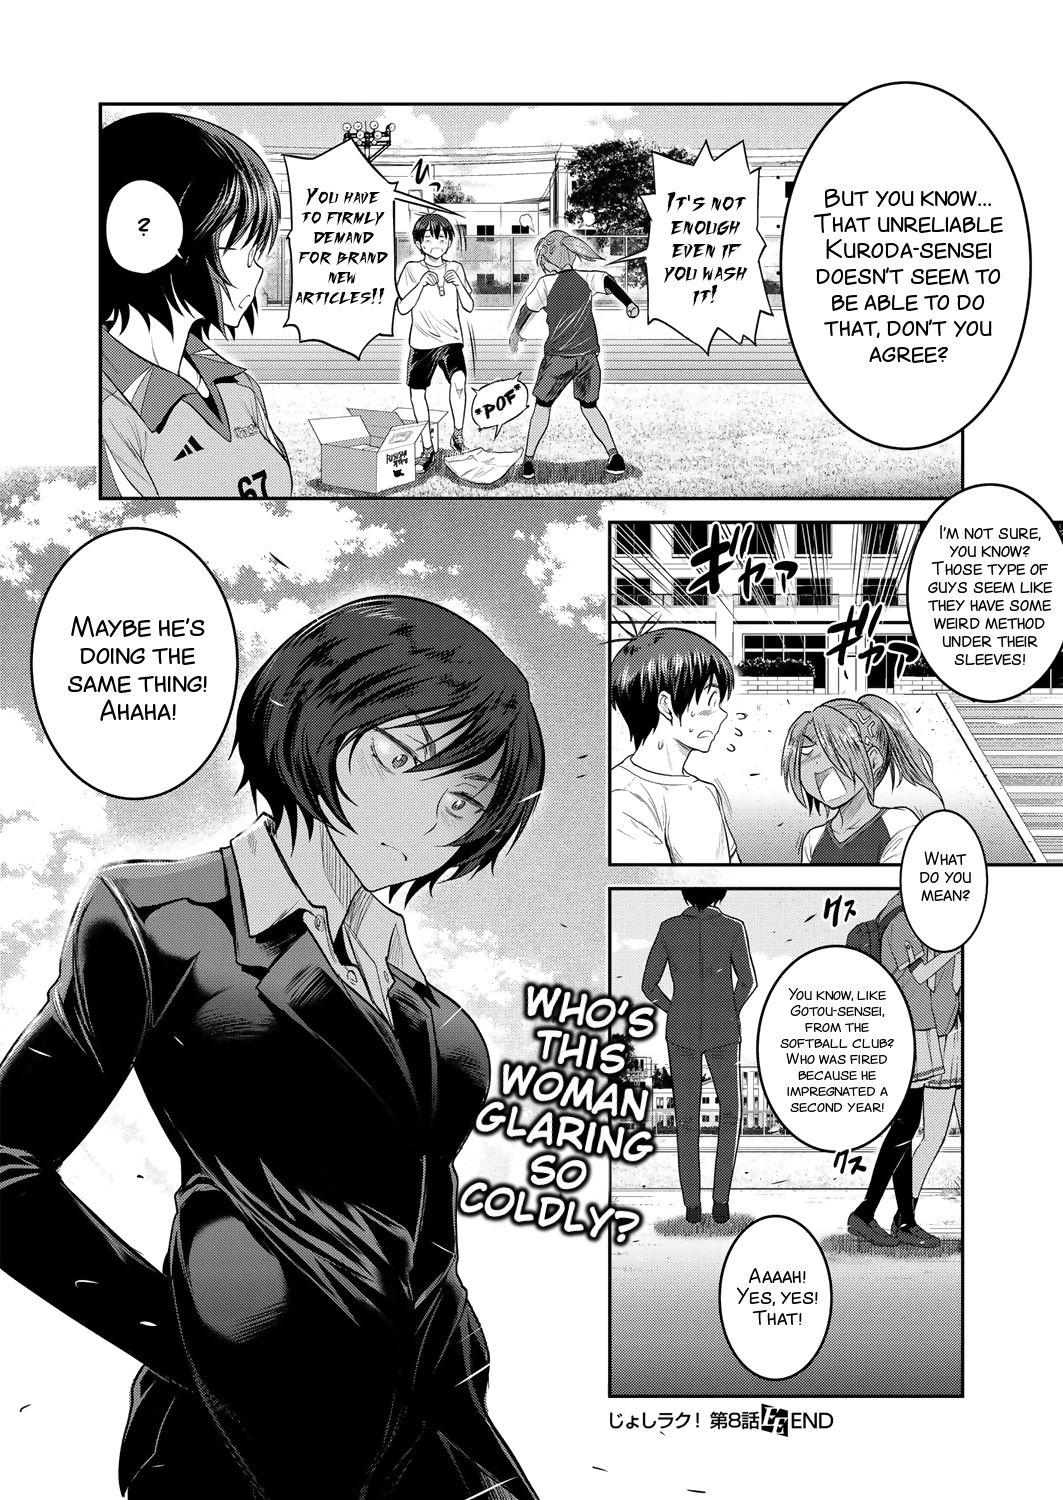 [DISTANCE] Joshi Luck! ~2 Years Later~ Ch. 7-8.5 [English] [SMDC] [Digital] 73